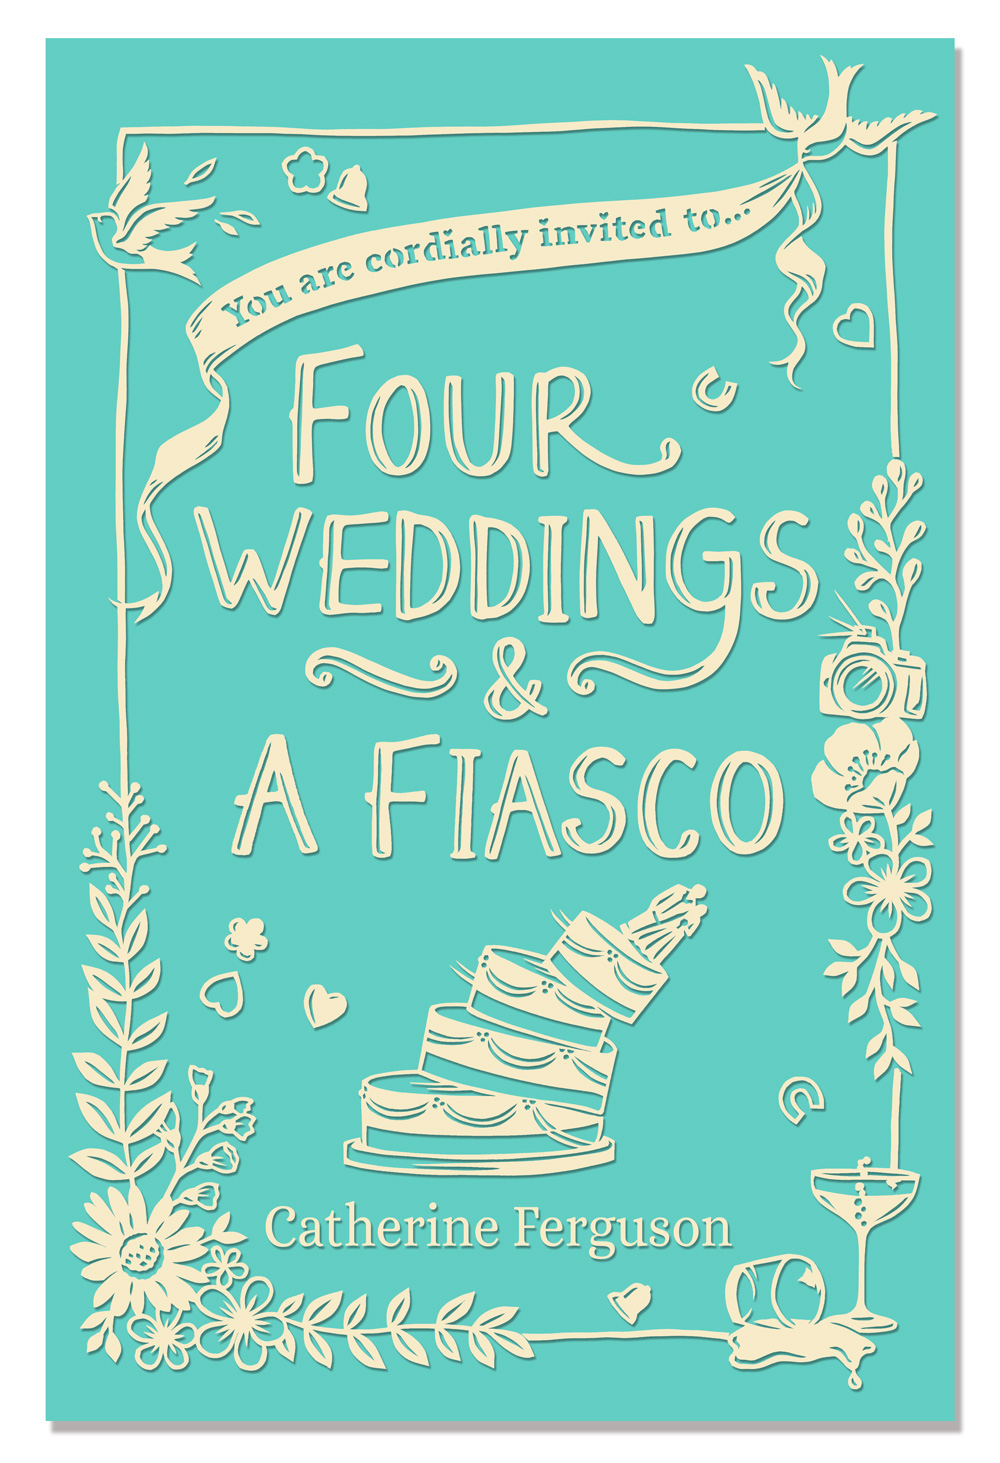 papercutting-four-weddings-and-a-fiasco-julene-harrison